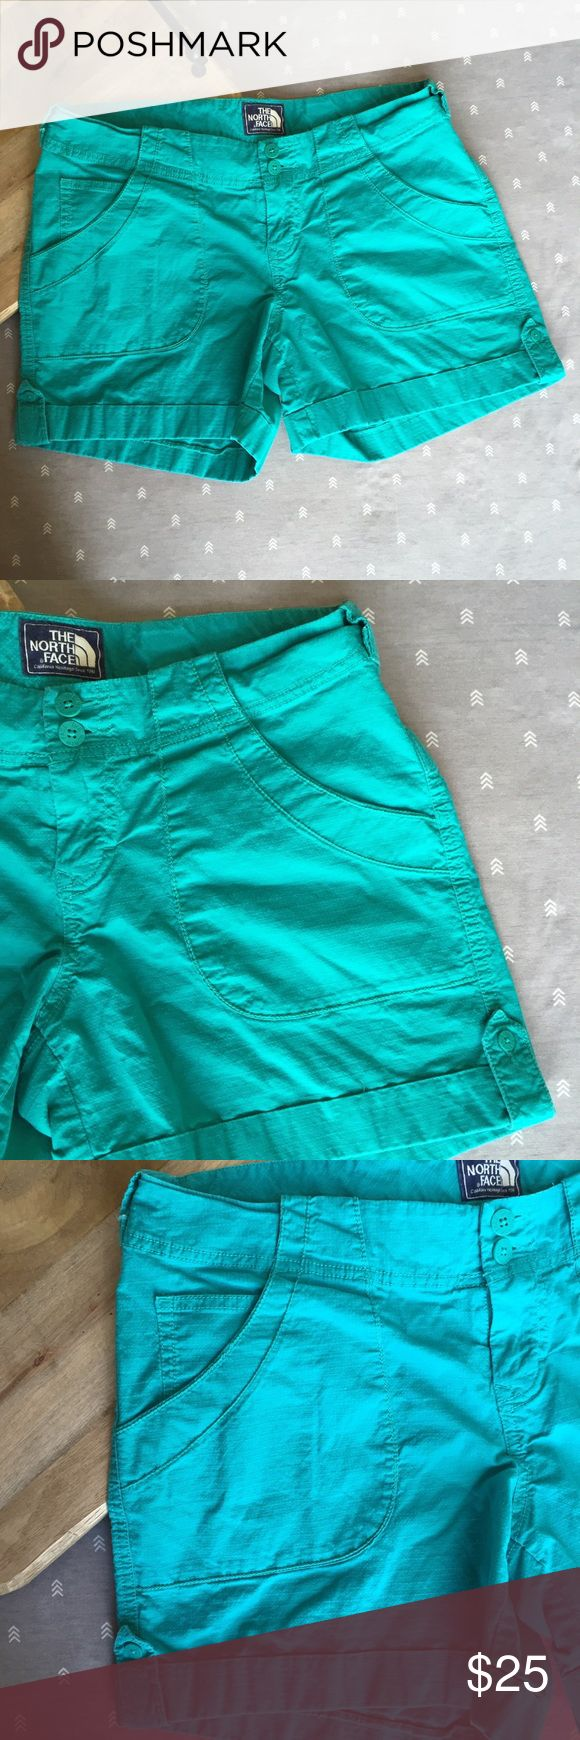 North Face teal/turquoise shirts North Face shorts. Teal/turquoise color. Back pockets, button closure. Two-button closure. Pre-loved - great condition, no major signs of wear. North Face Shorts